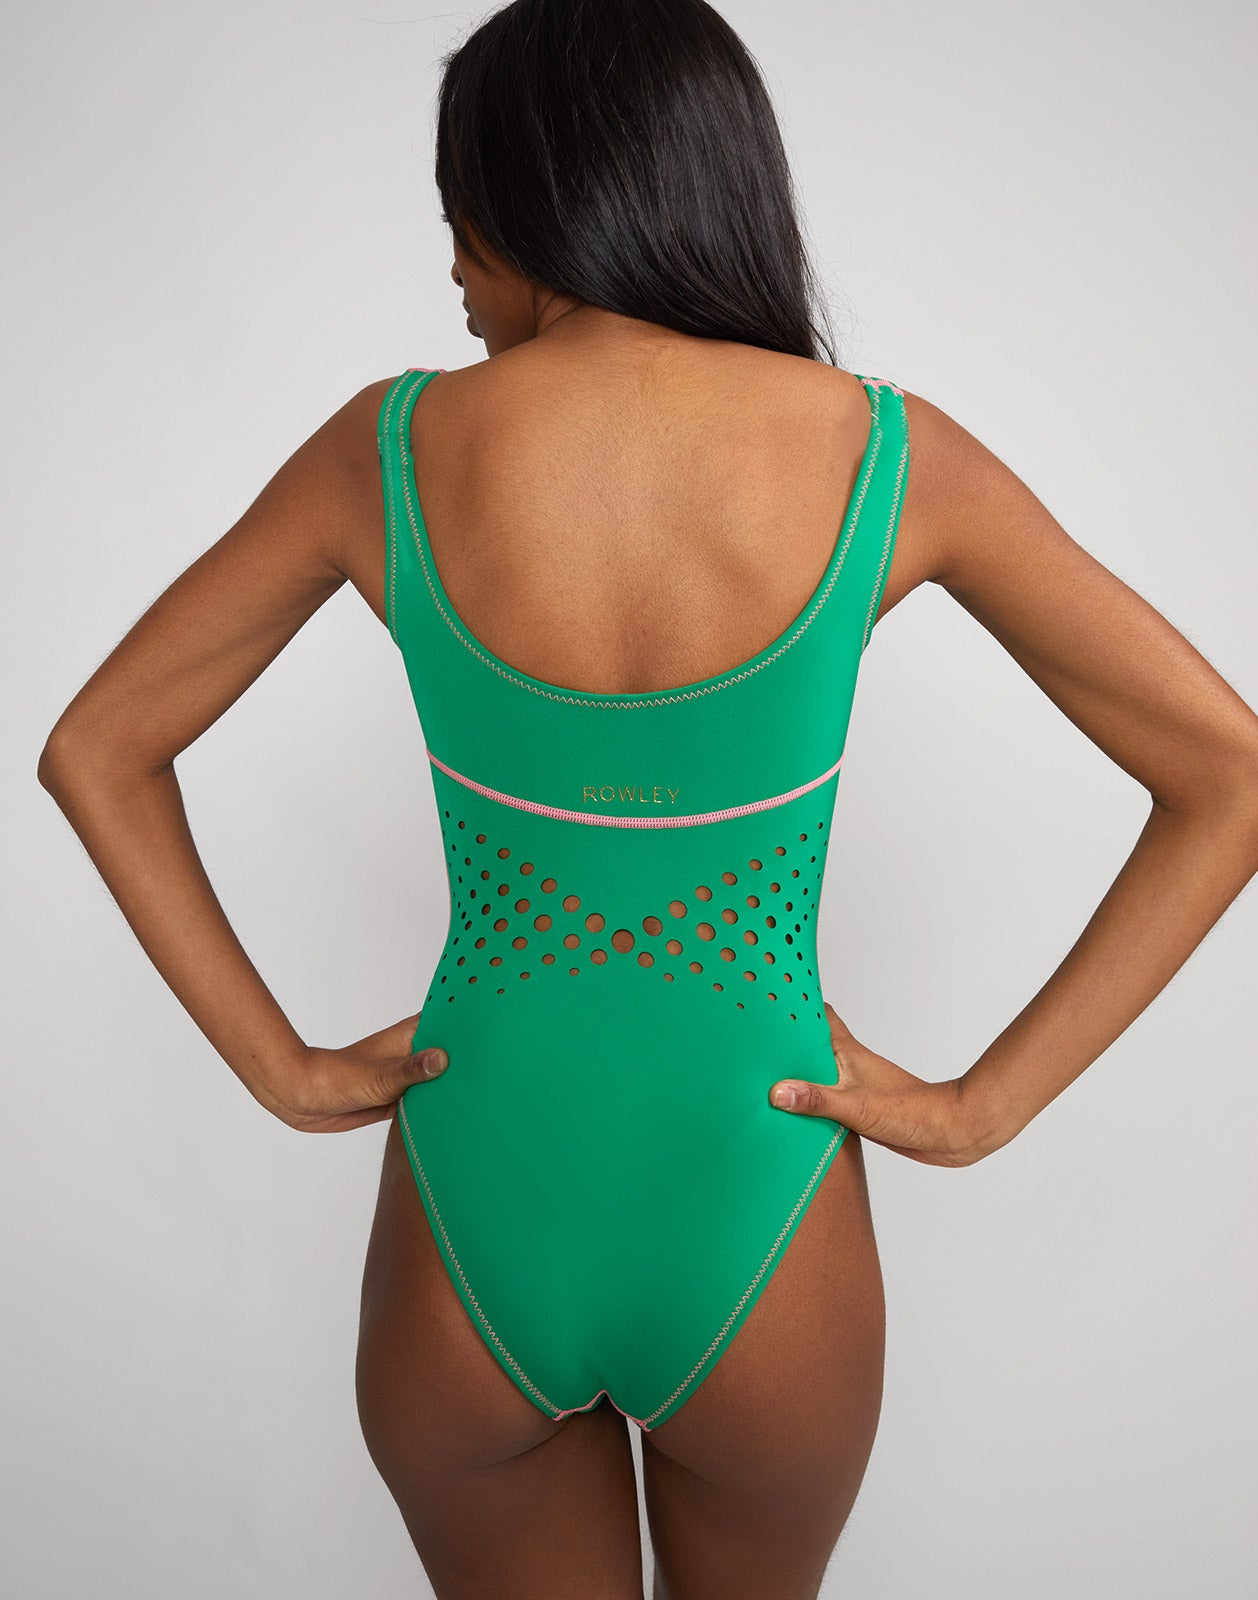 Back view of the Maui Perforated Swimsuit